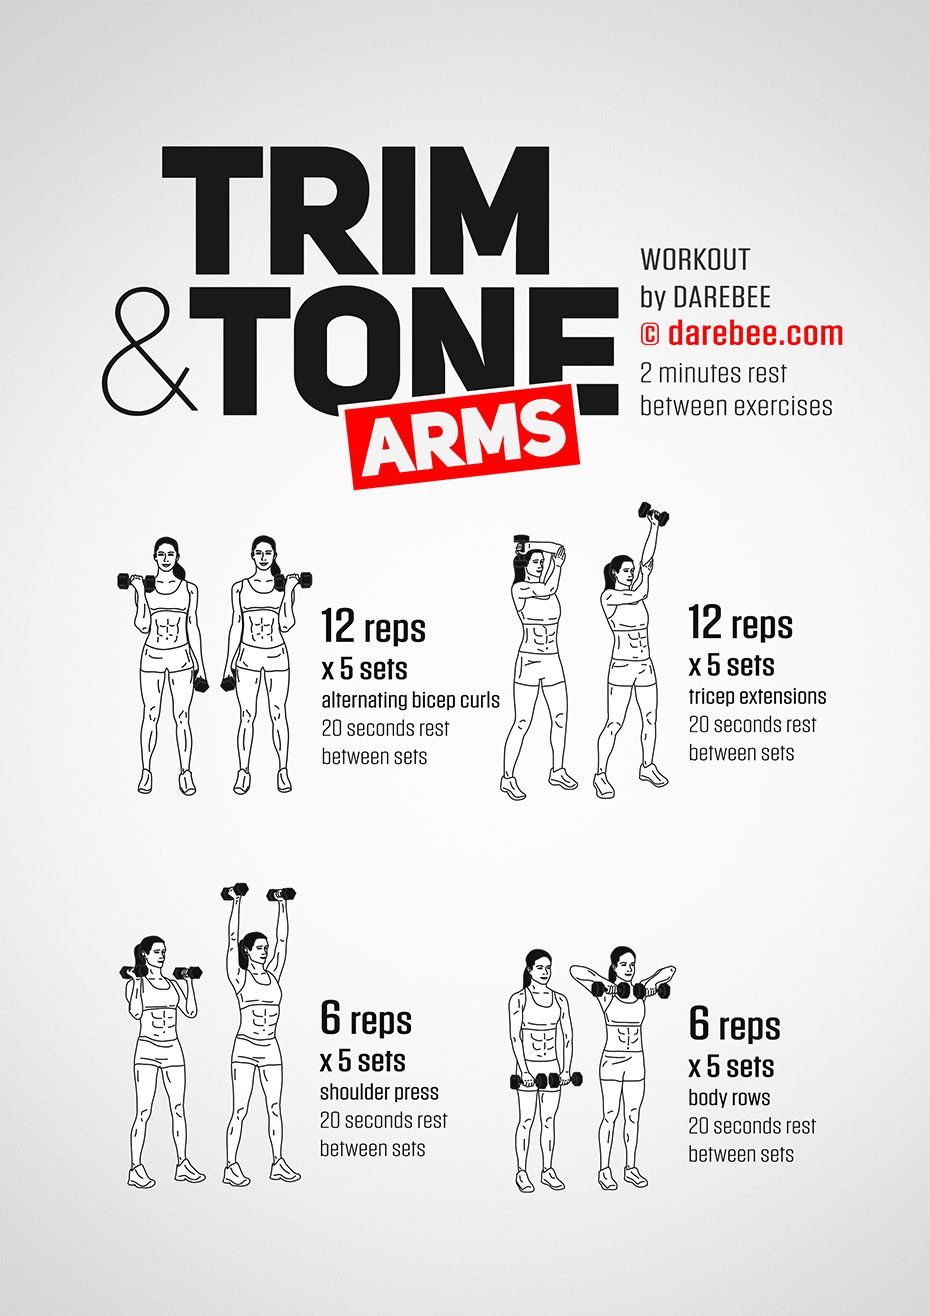 Trim & Tone Arms Workout by DAREBEE #darebee #workout #arms #armworkout #exercis…